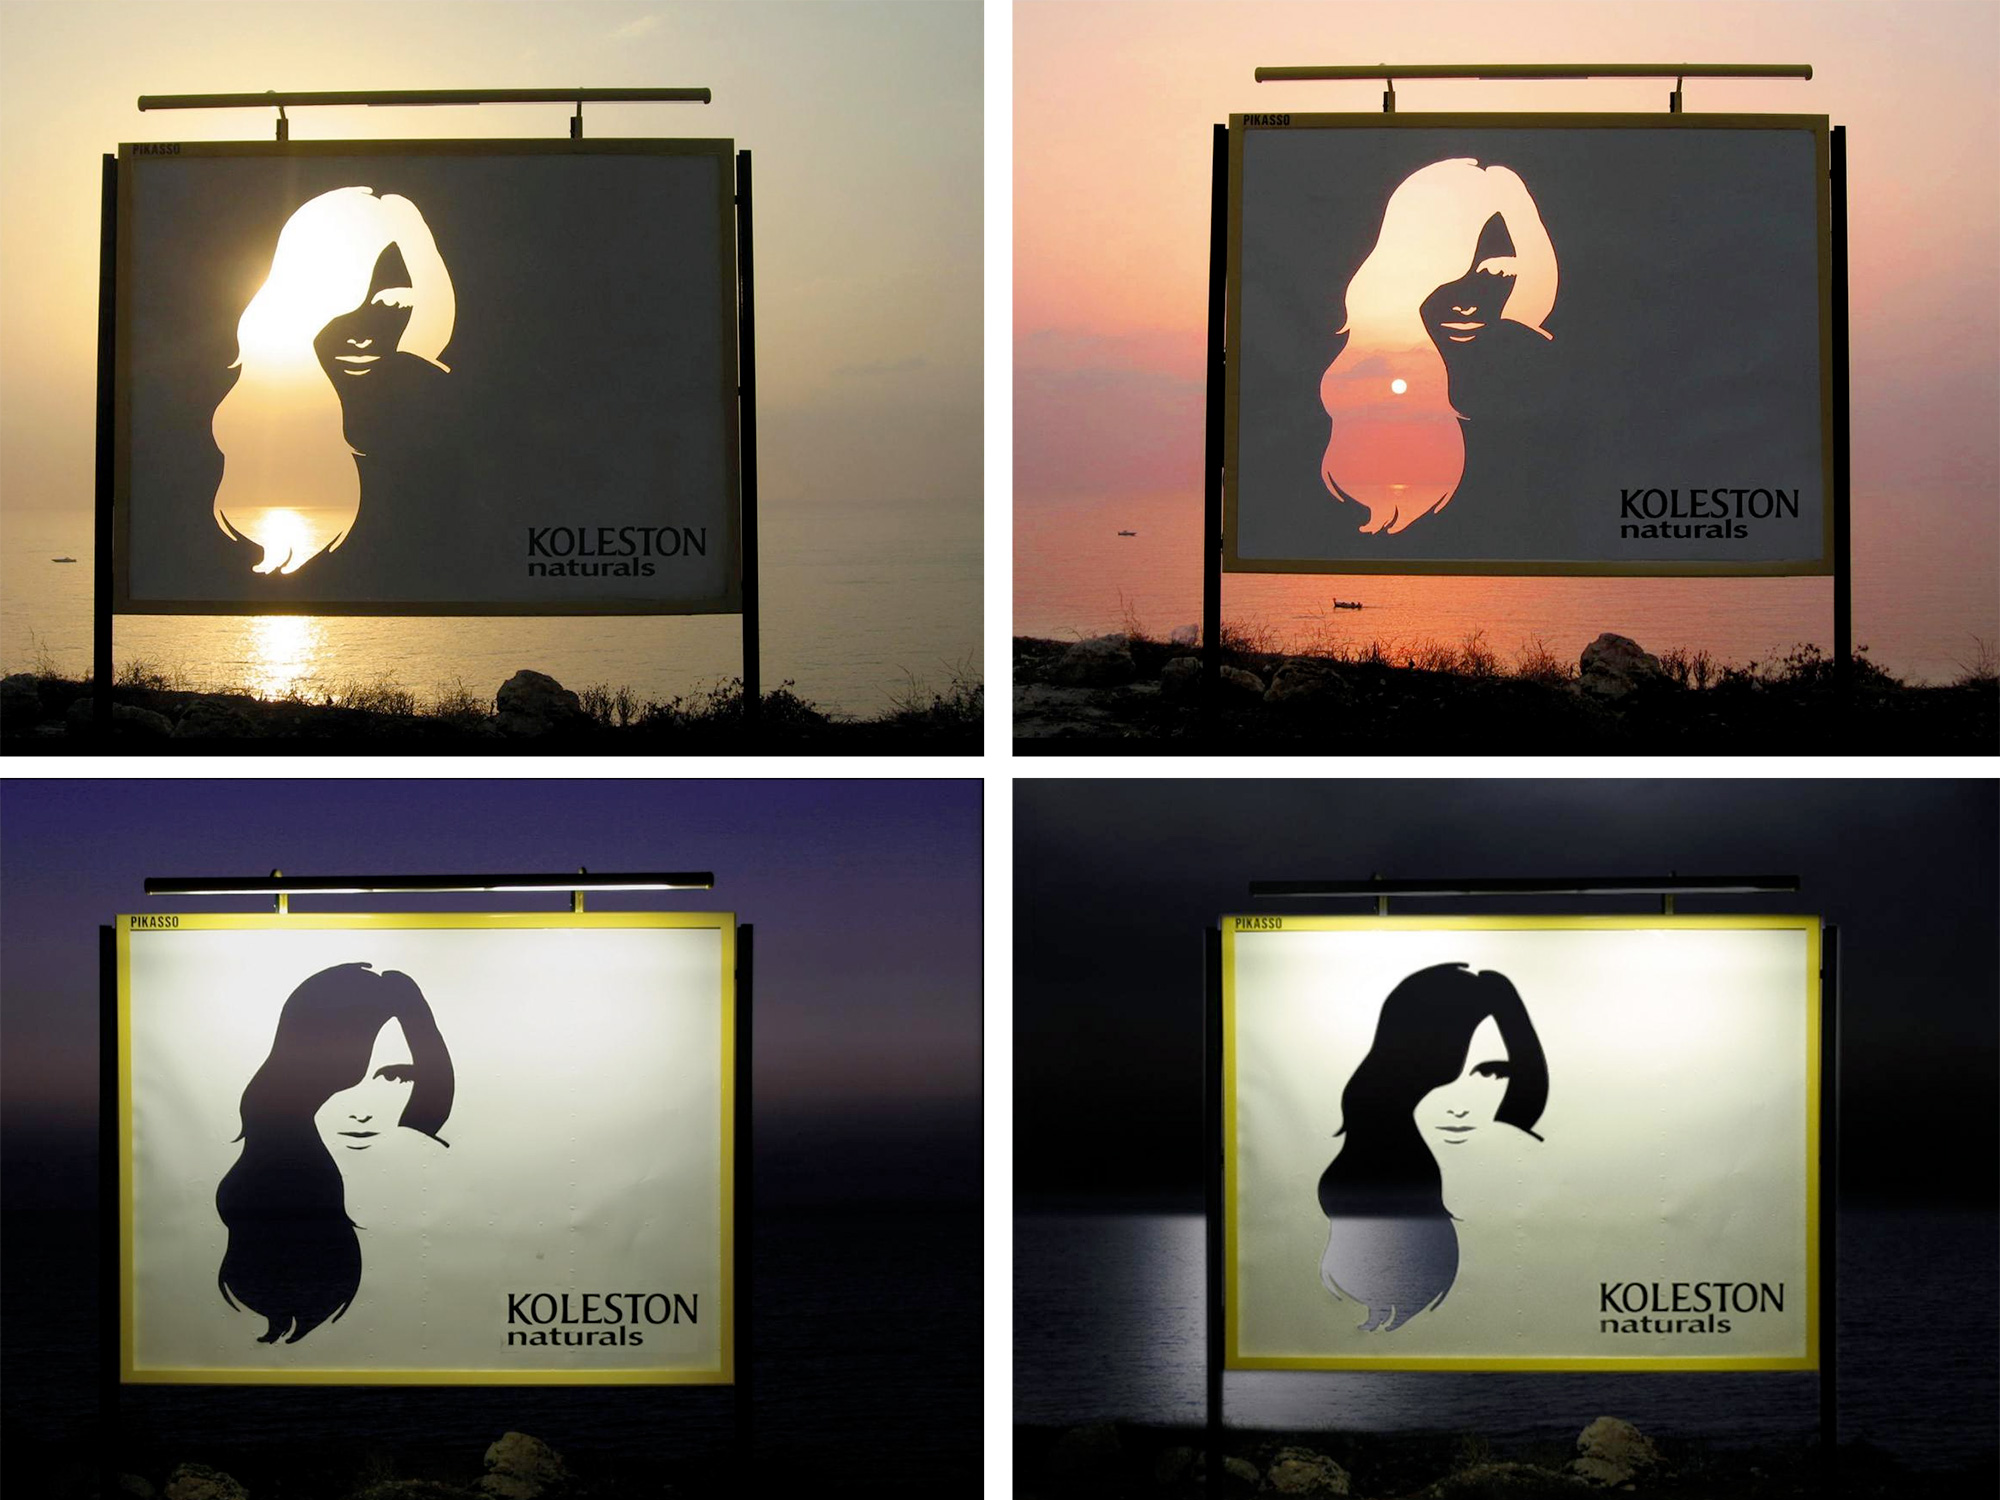 Koleston Billboard